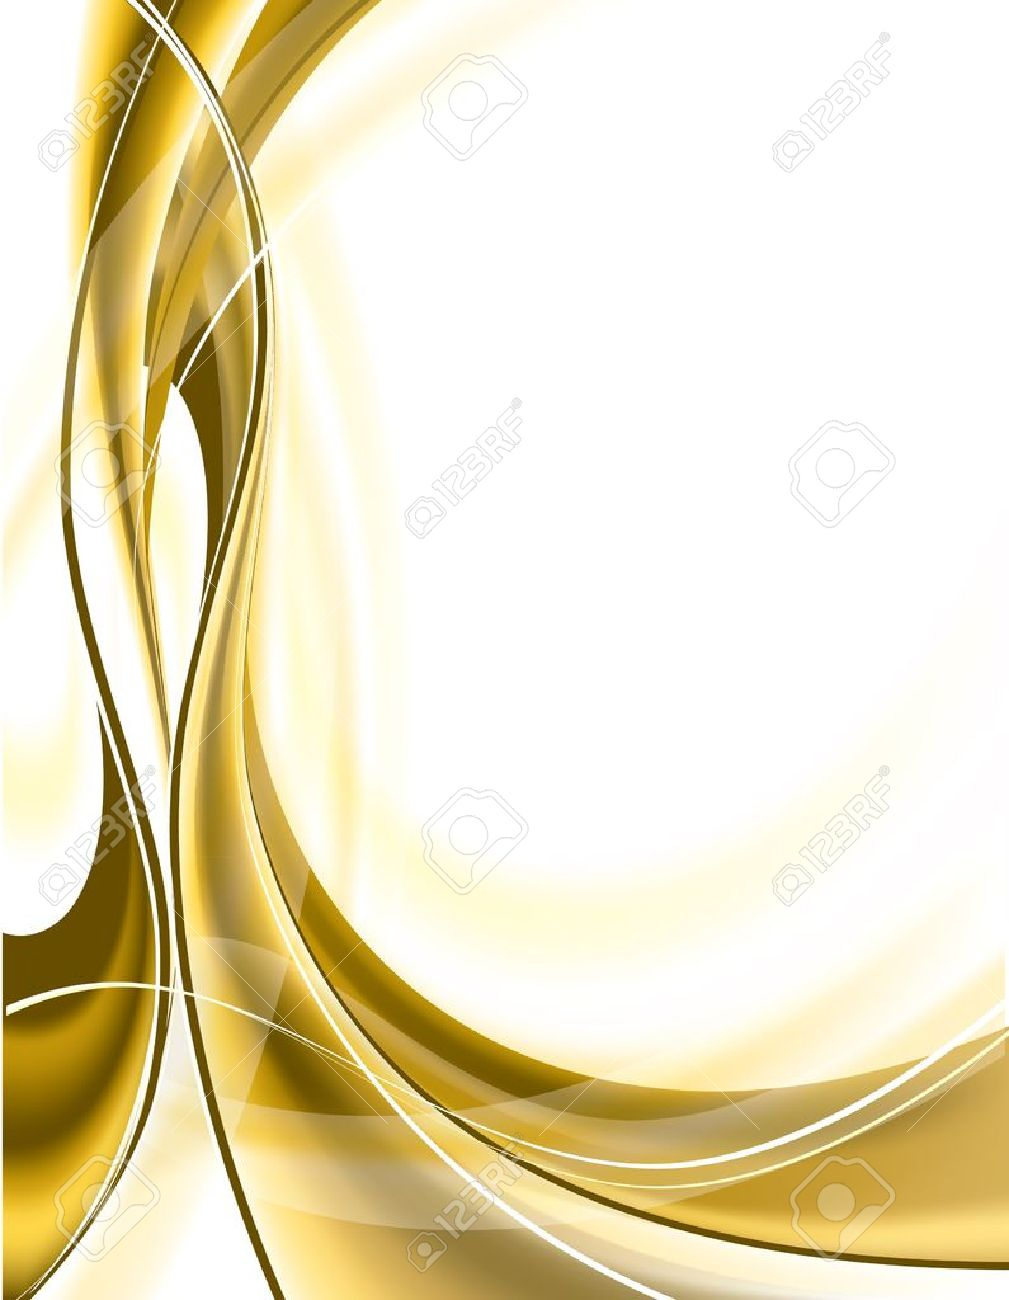 Abstract Background Stock Vector - 14344667